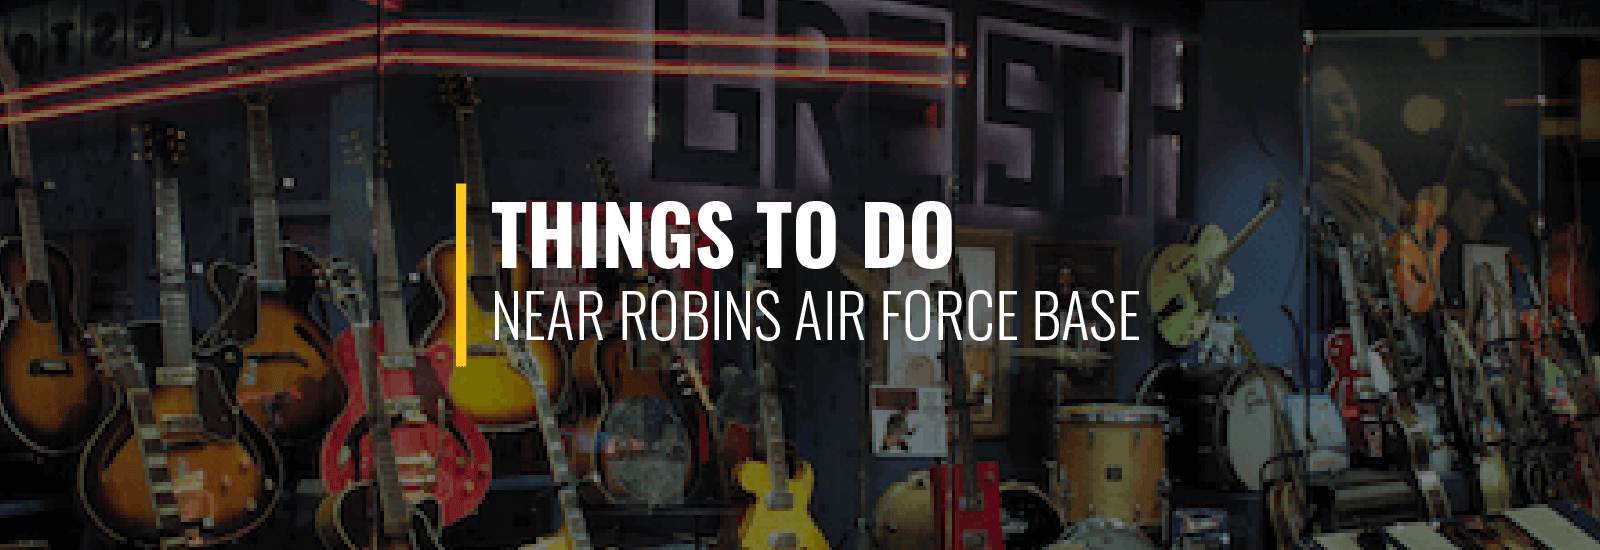 Things to do Robins AFB